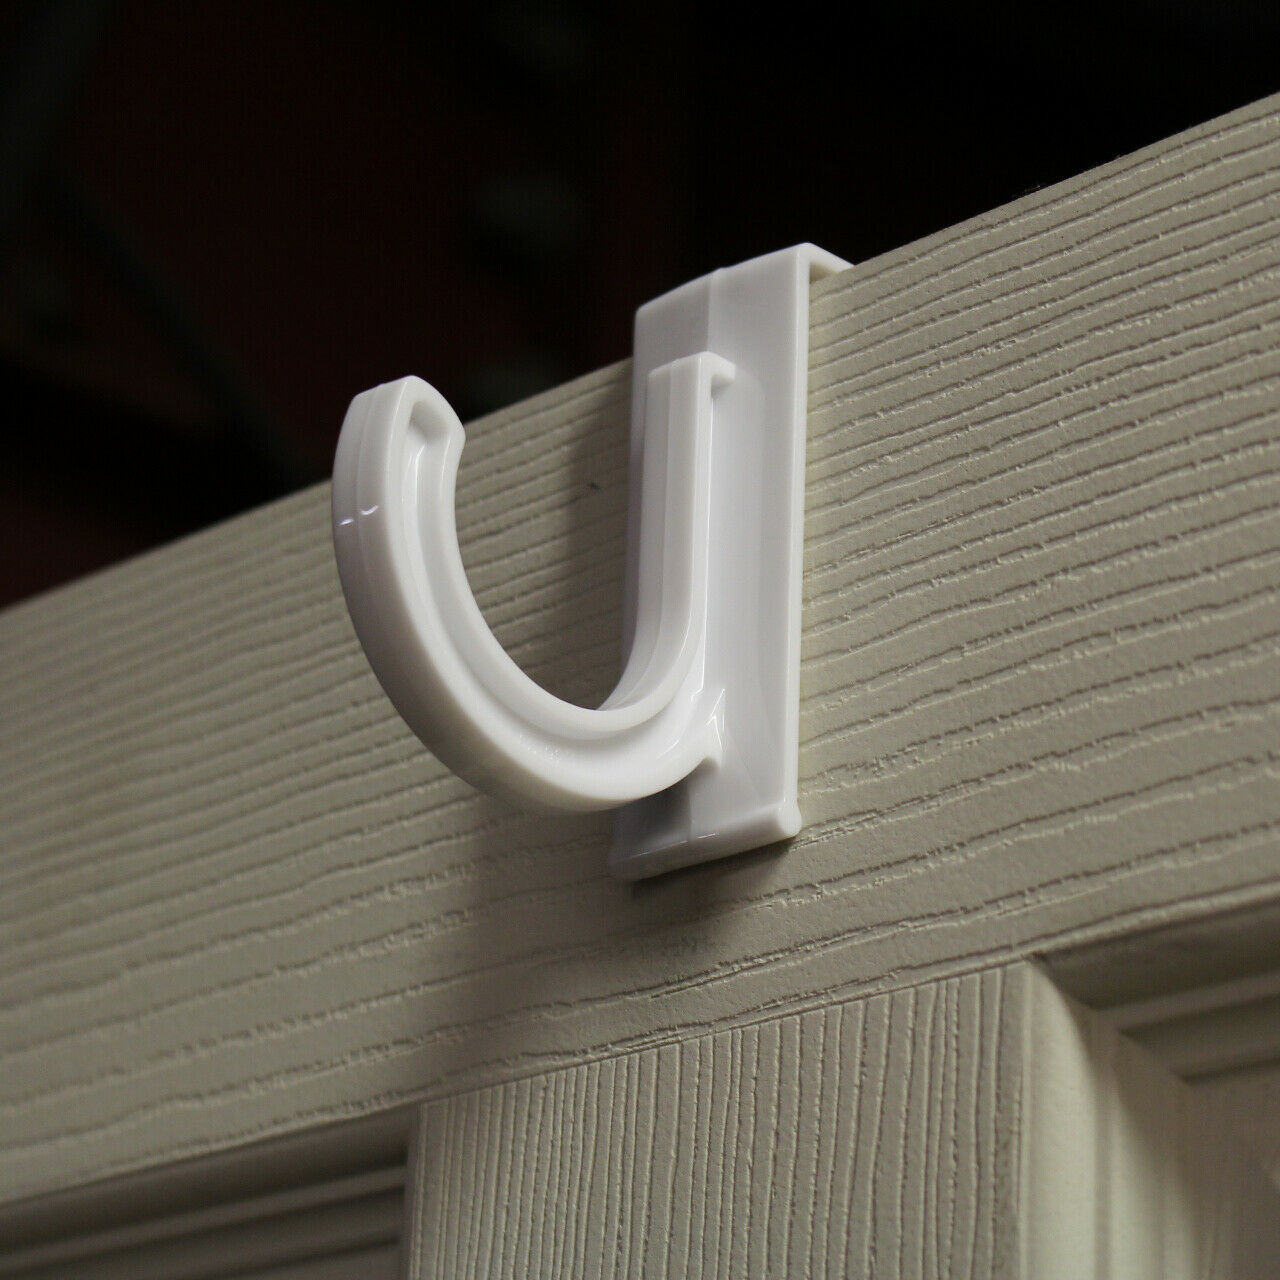 WHITE PLASTIC LARGE OVER THE DOOR HOOKS WITH SEGMENTED RAIL FOR COAT HANGERS